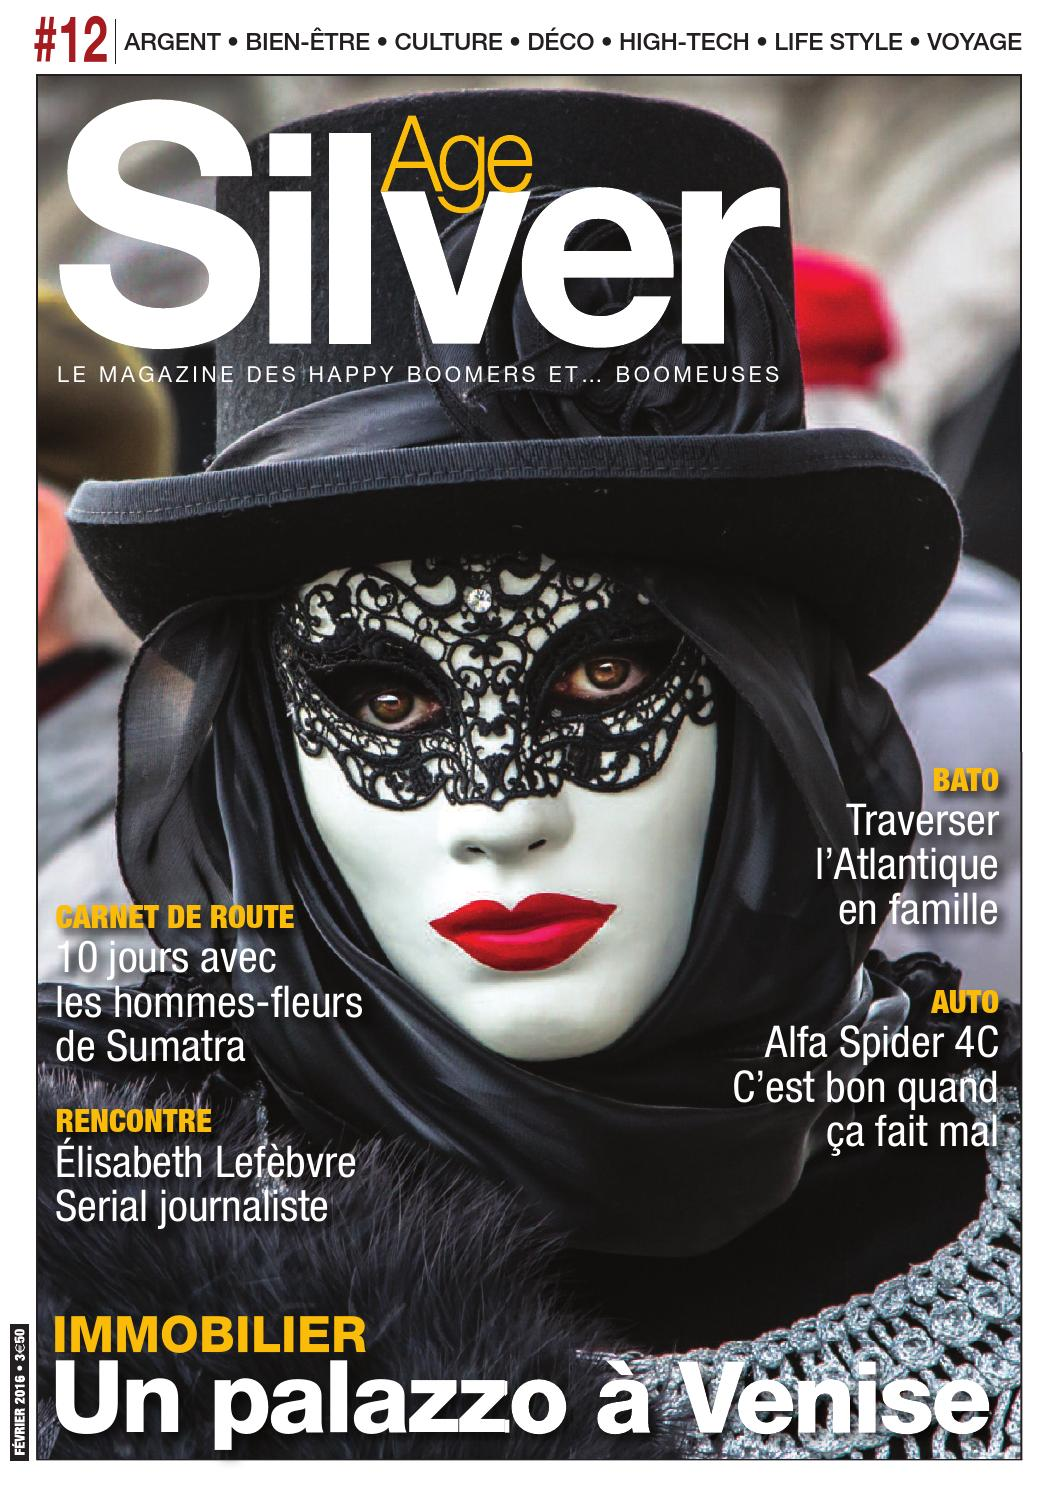 12 Silverage By Issuu By Silverage 12 q34L5ARj